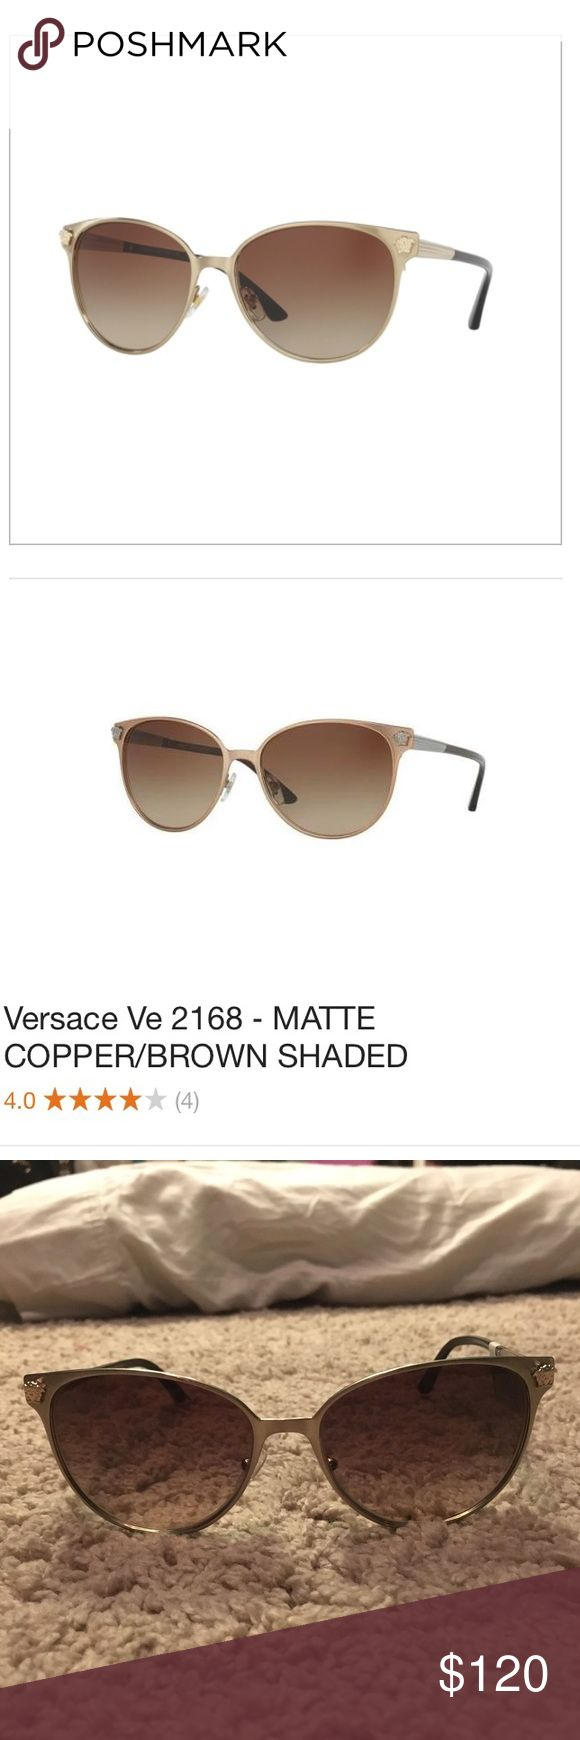 NWT Versace Ve 2168 Matte Copper Brown Sunglasses BRAND NEW!! ⭐️ 100% Authentic Versace product  Brand: Versace Type: Sunglasses Model: Versace VE 2168 Sunglasses Gender: Female Material: Metal The Versace brand is synonymous with prevailing taste and quality craftsmanship. It is for that reason, that Versace was quick to become a leading brand in luxury eyewear. Created for the fashionable consumer, Versace produces a range of shades from classy and basic to elegant or chic. Your…